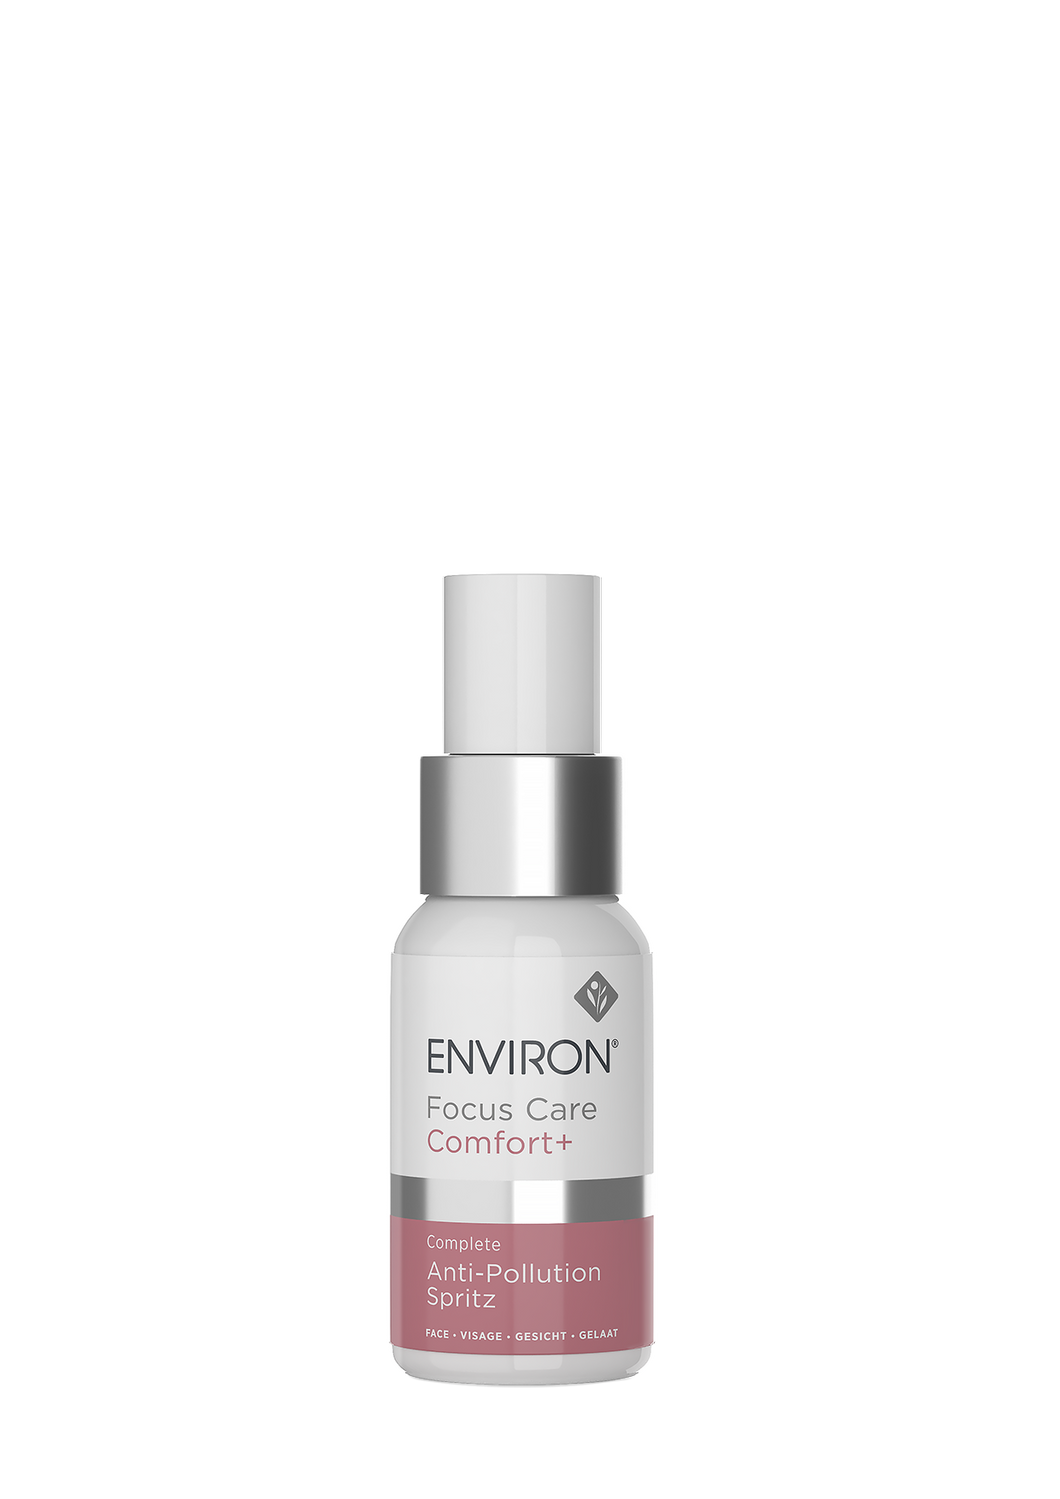 Complete Anti-Pollution Spritz